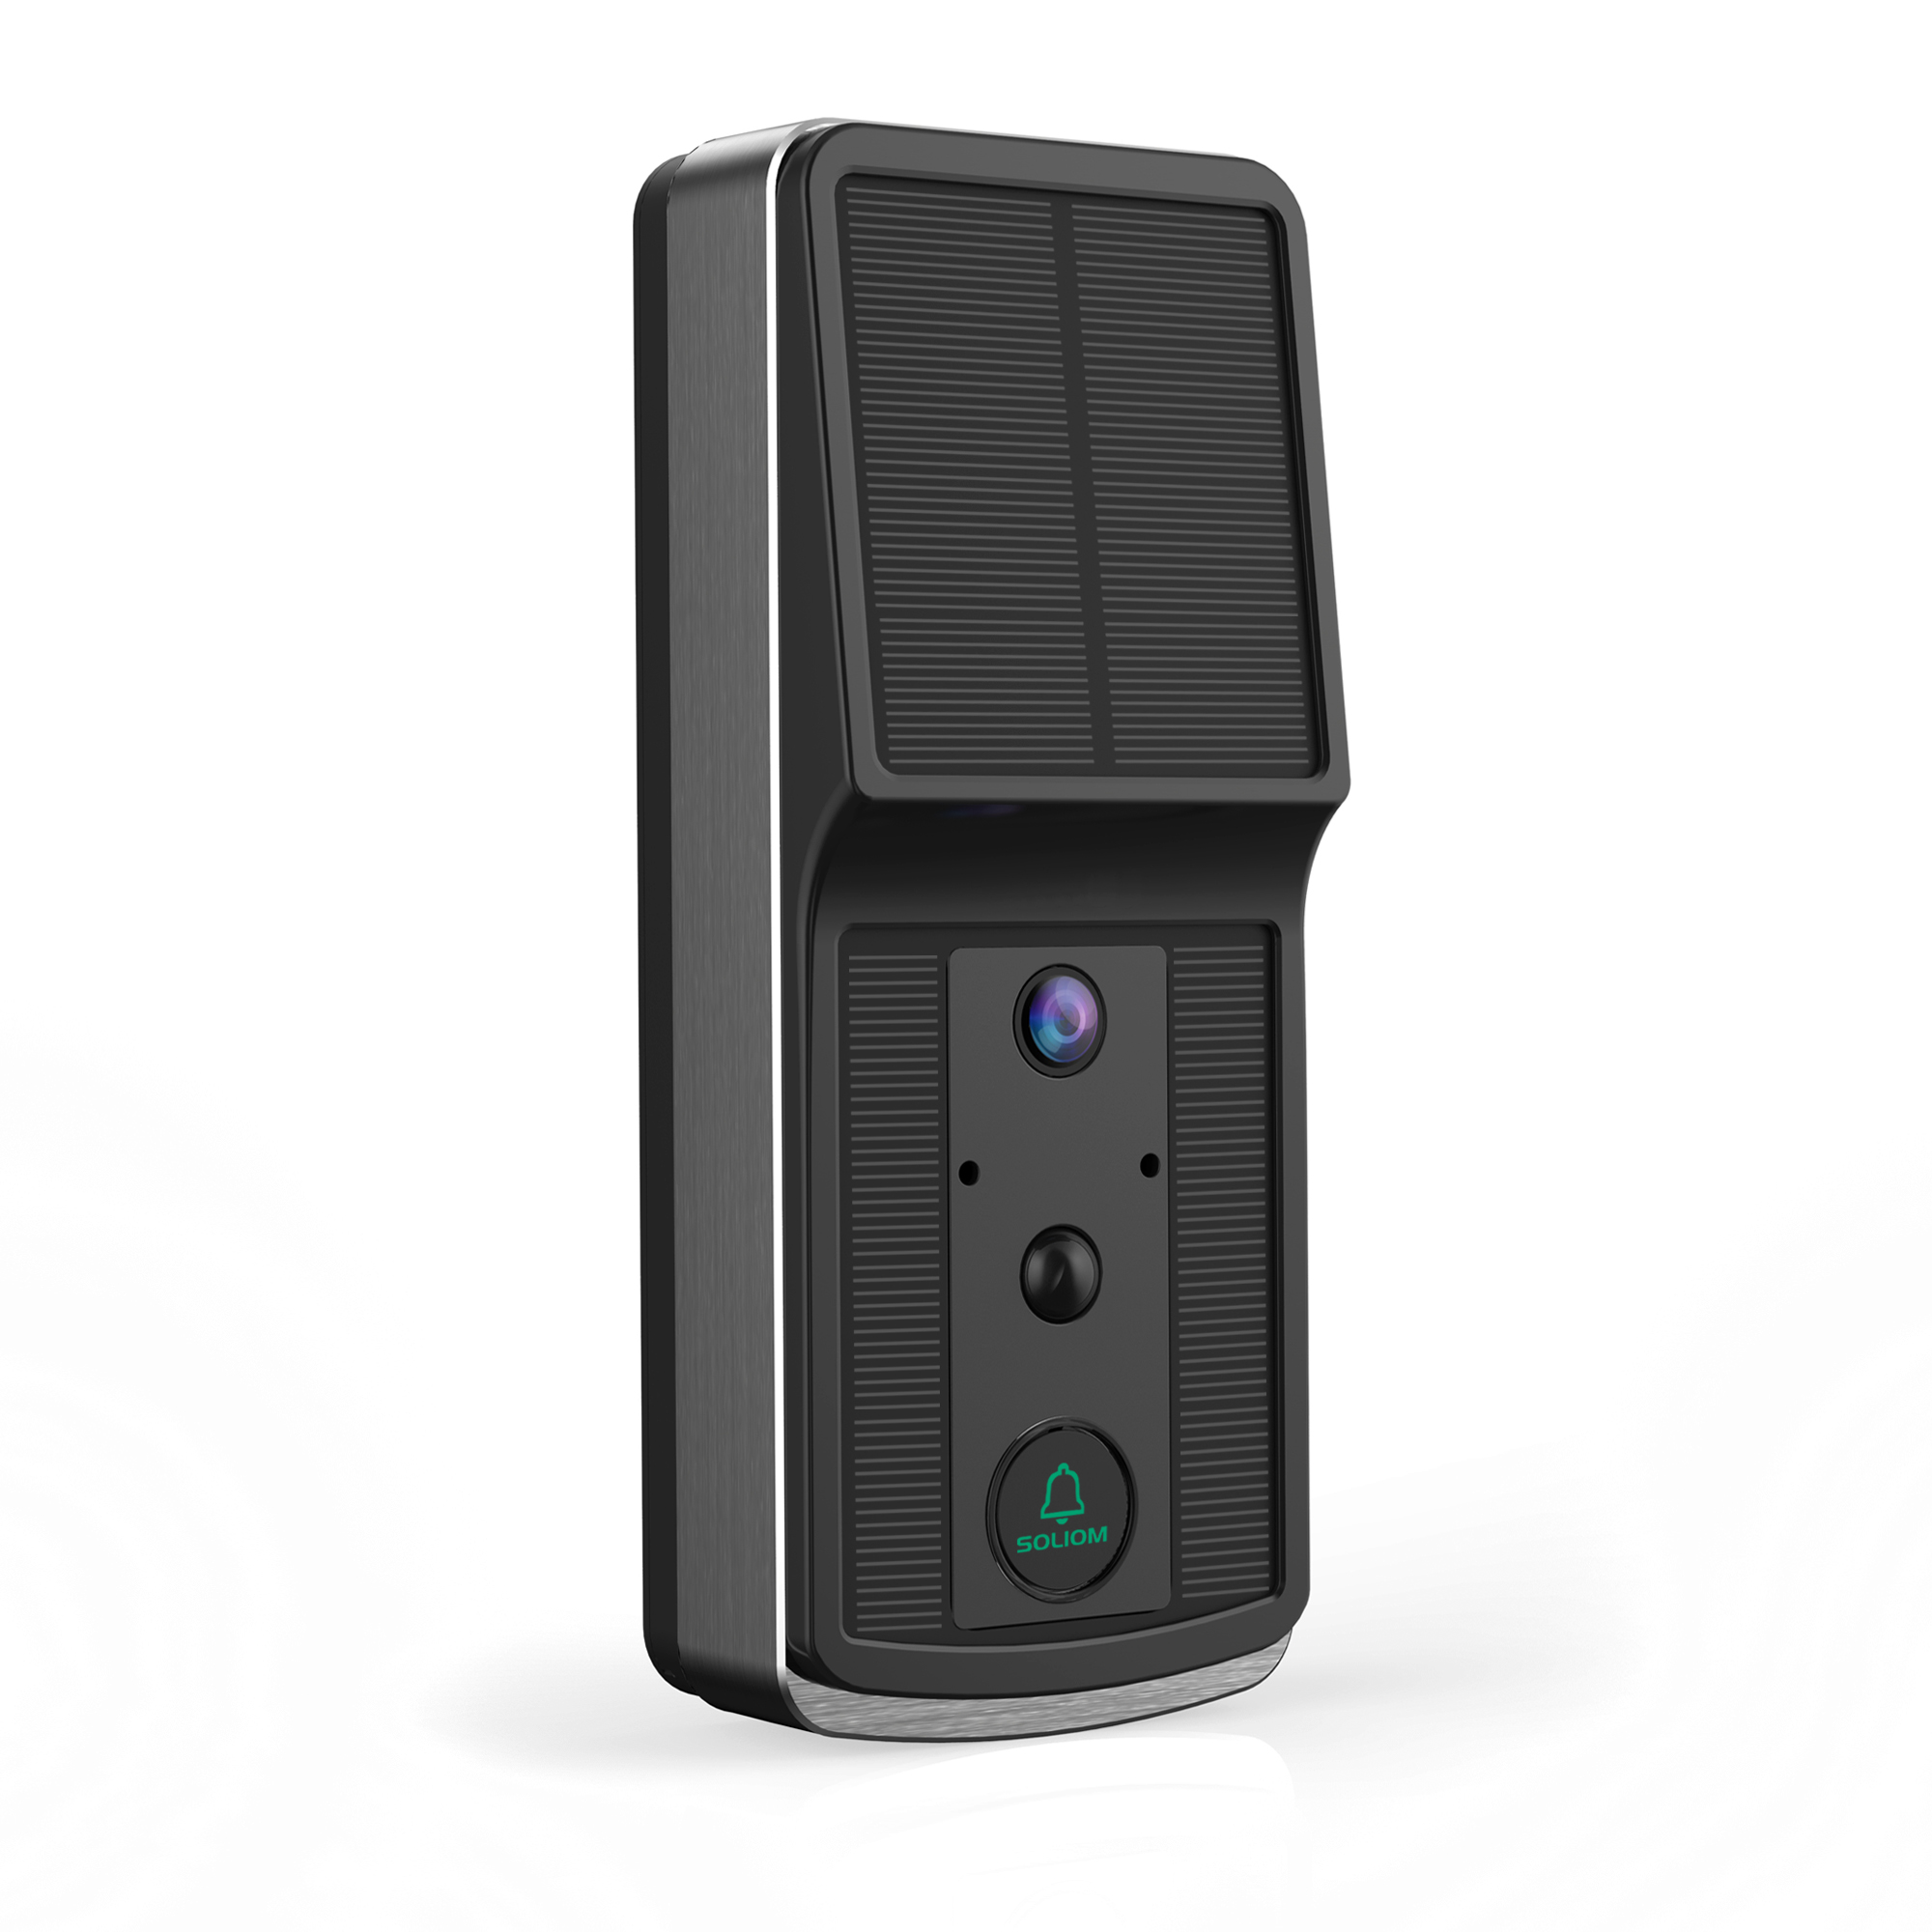 Solar power, Soliom Wireless Video Doorbell